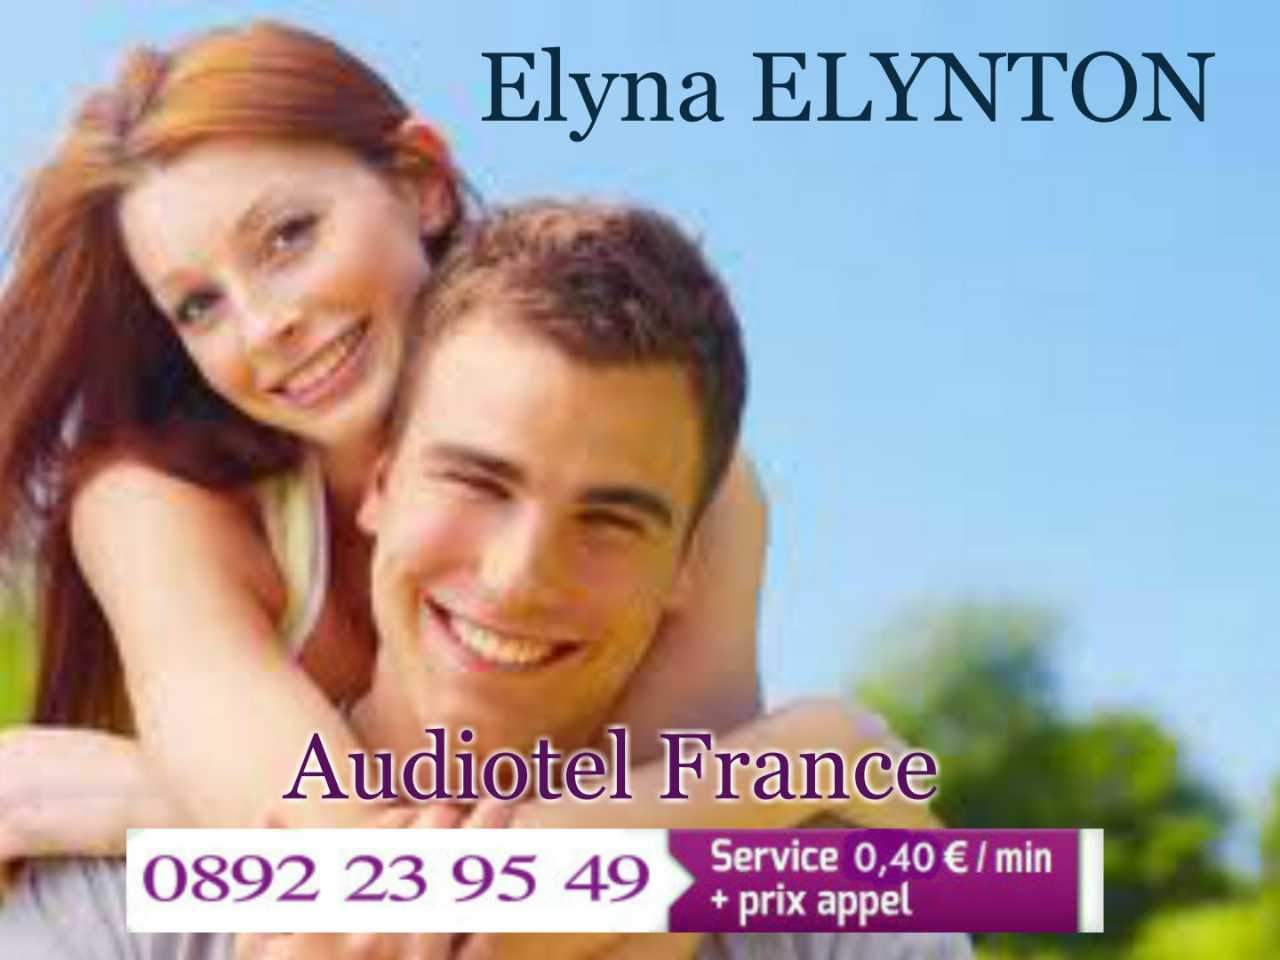 Audio Elyna